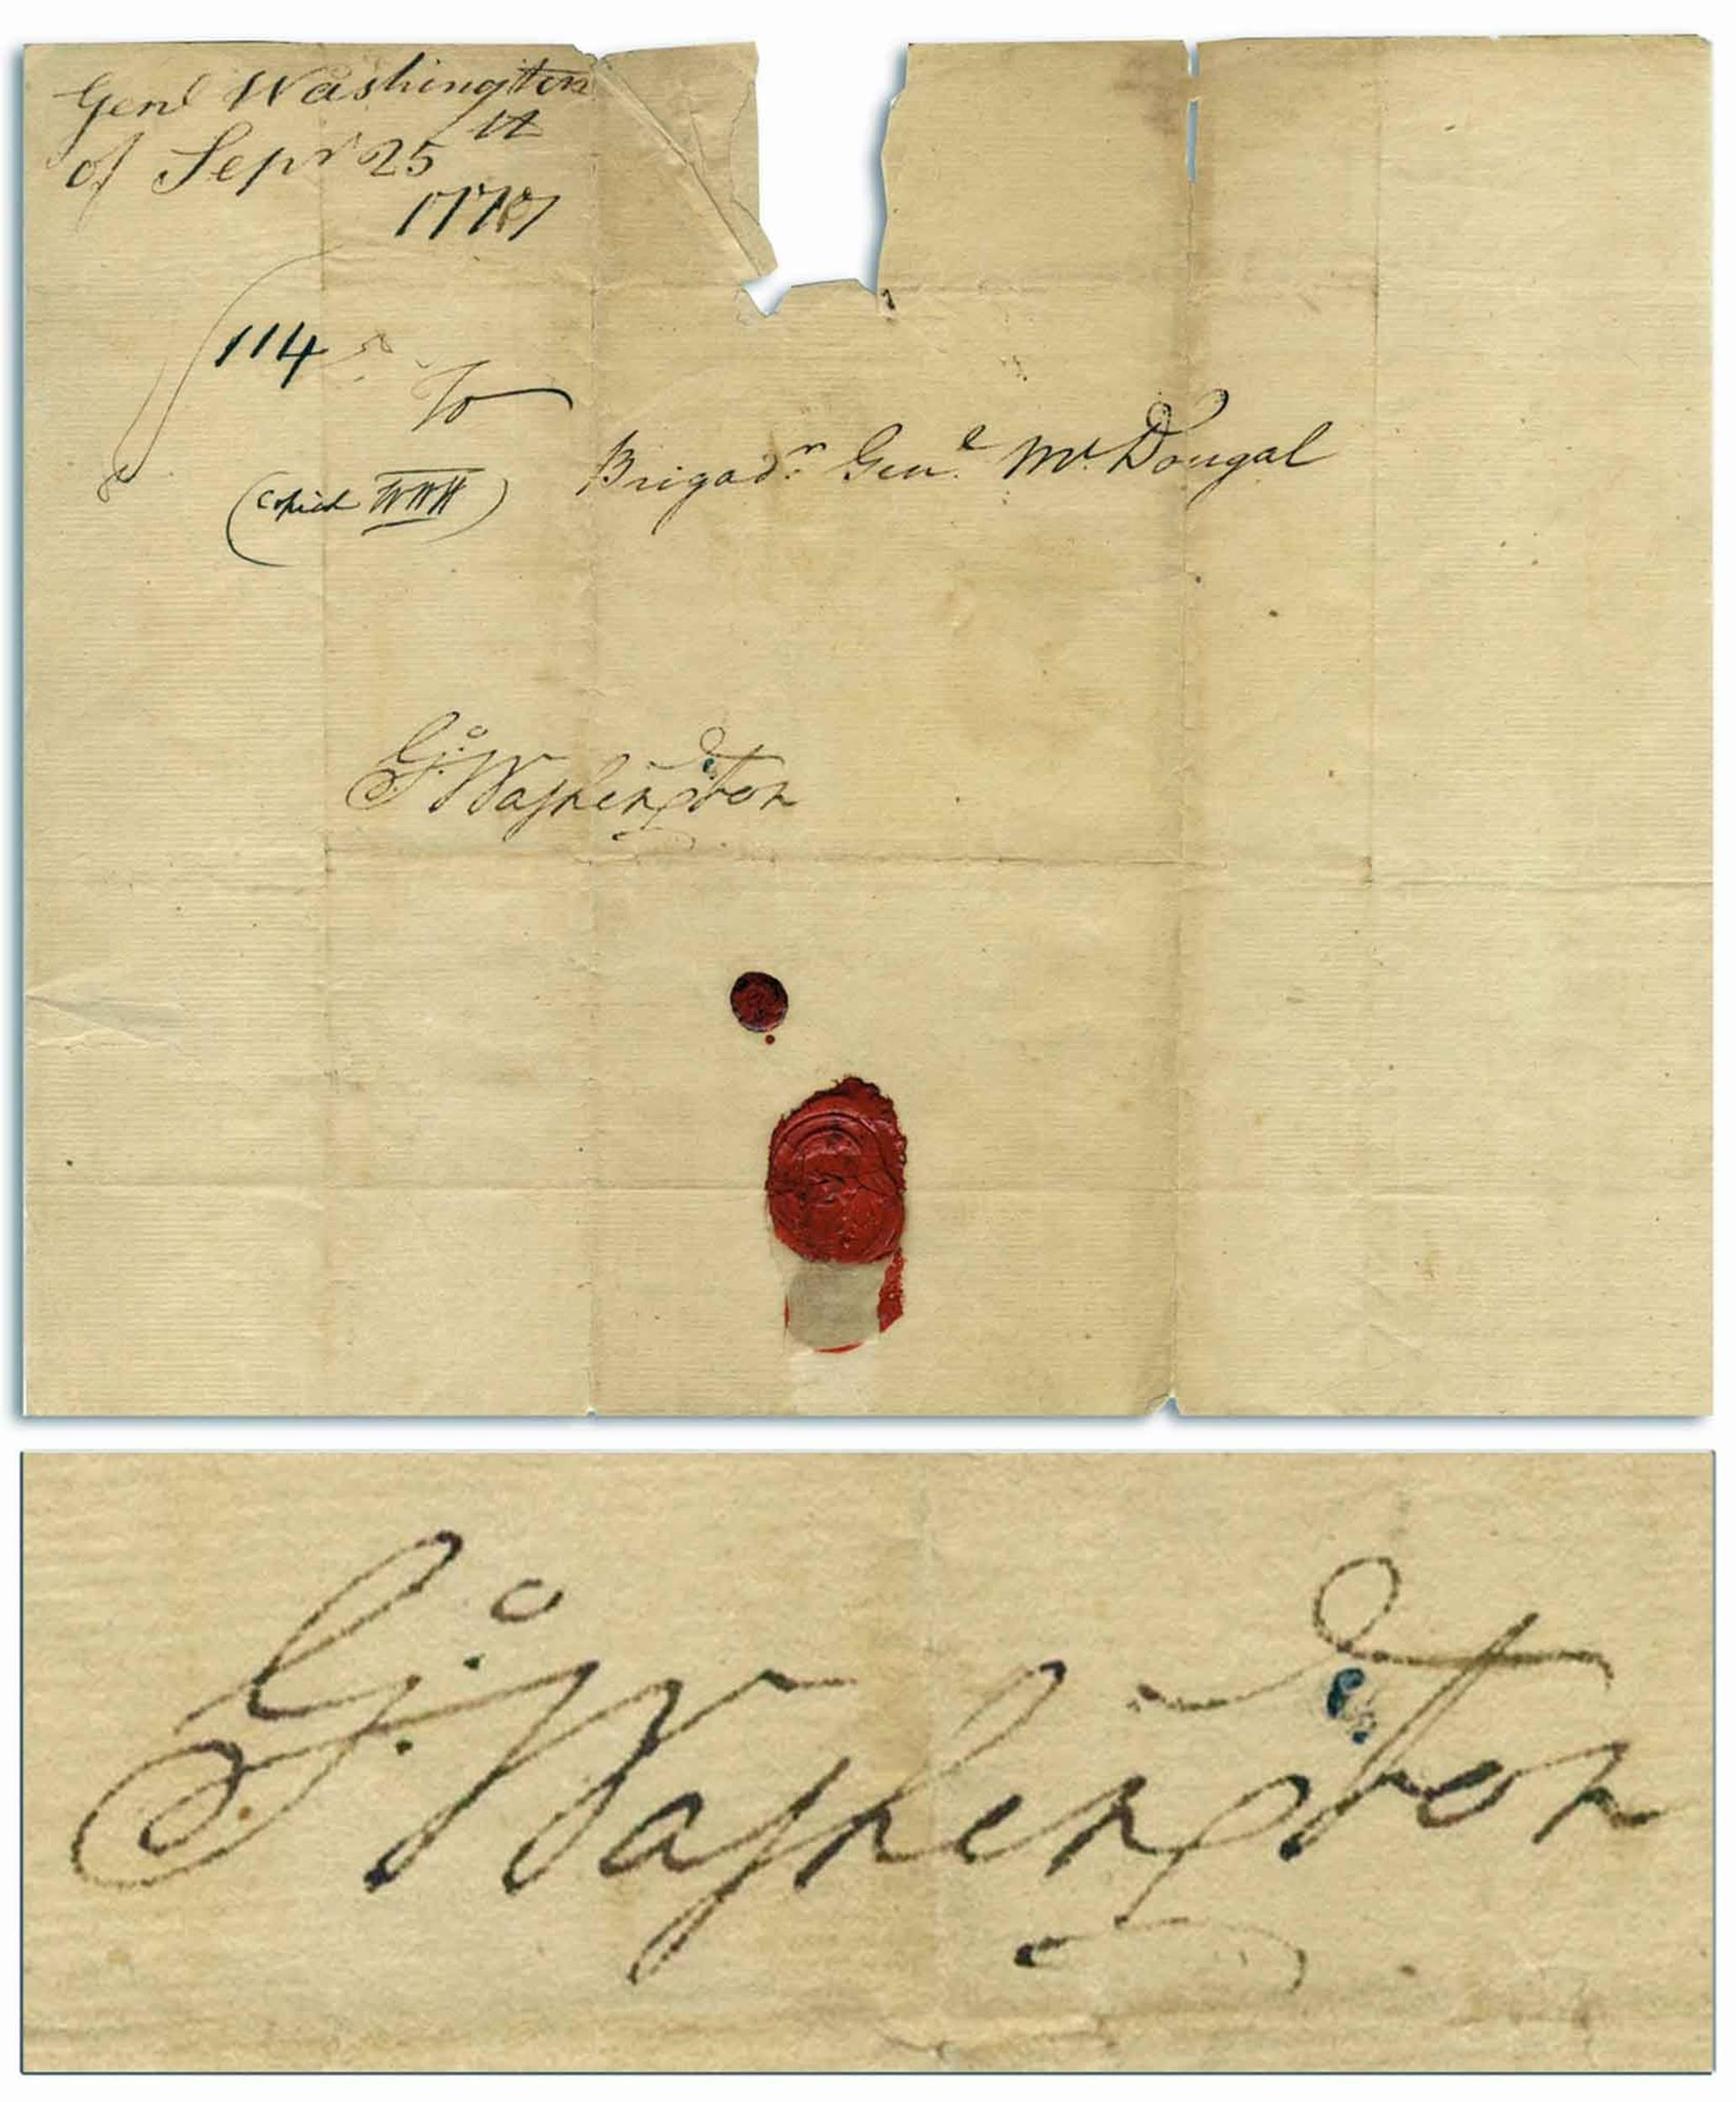 George Washington Franking Signature During the Revolutionary War -- From 25 September 1777 Just One Day Before the British Captured Philadelphia